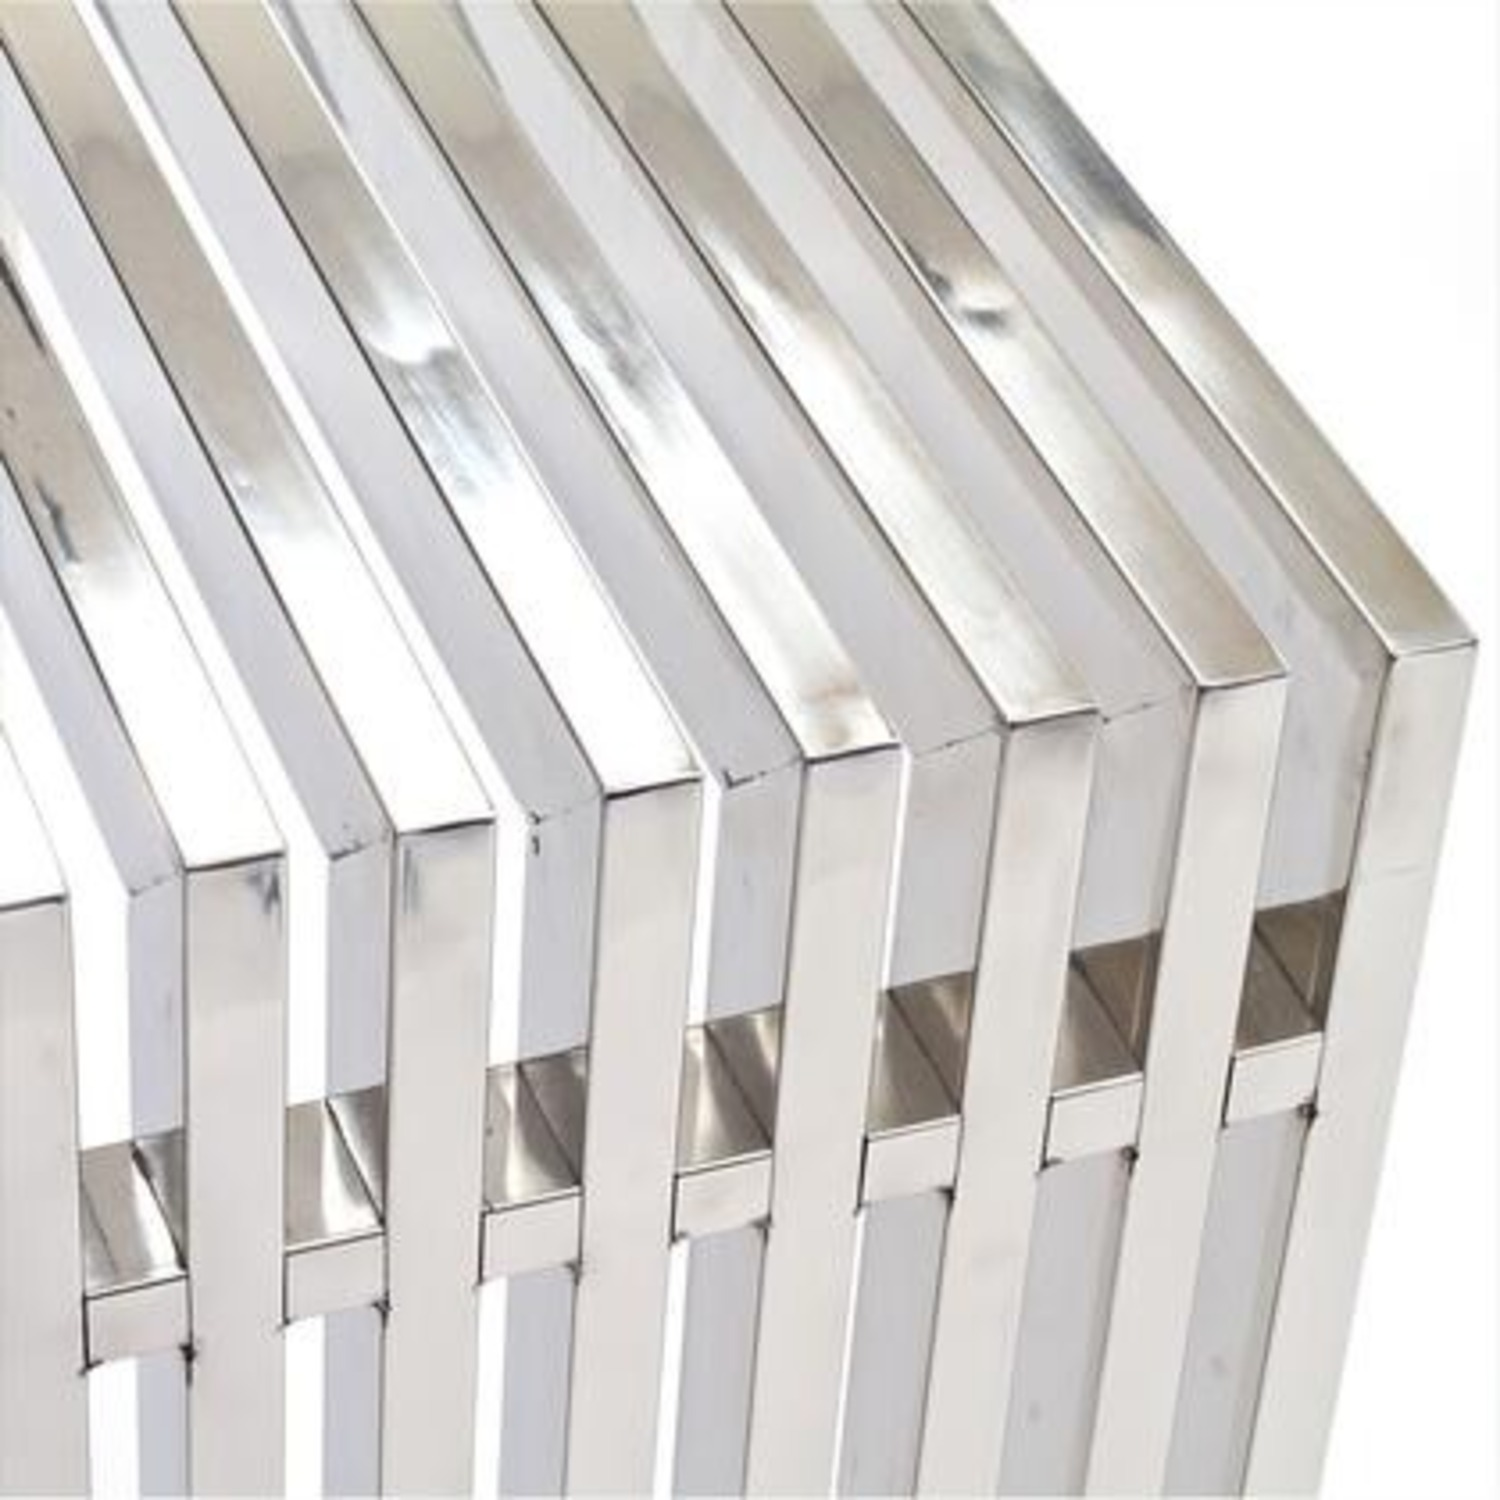 Modern Console Table In Silver Stainless Finish - image-1